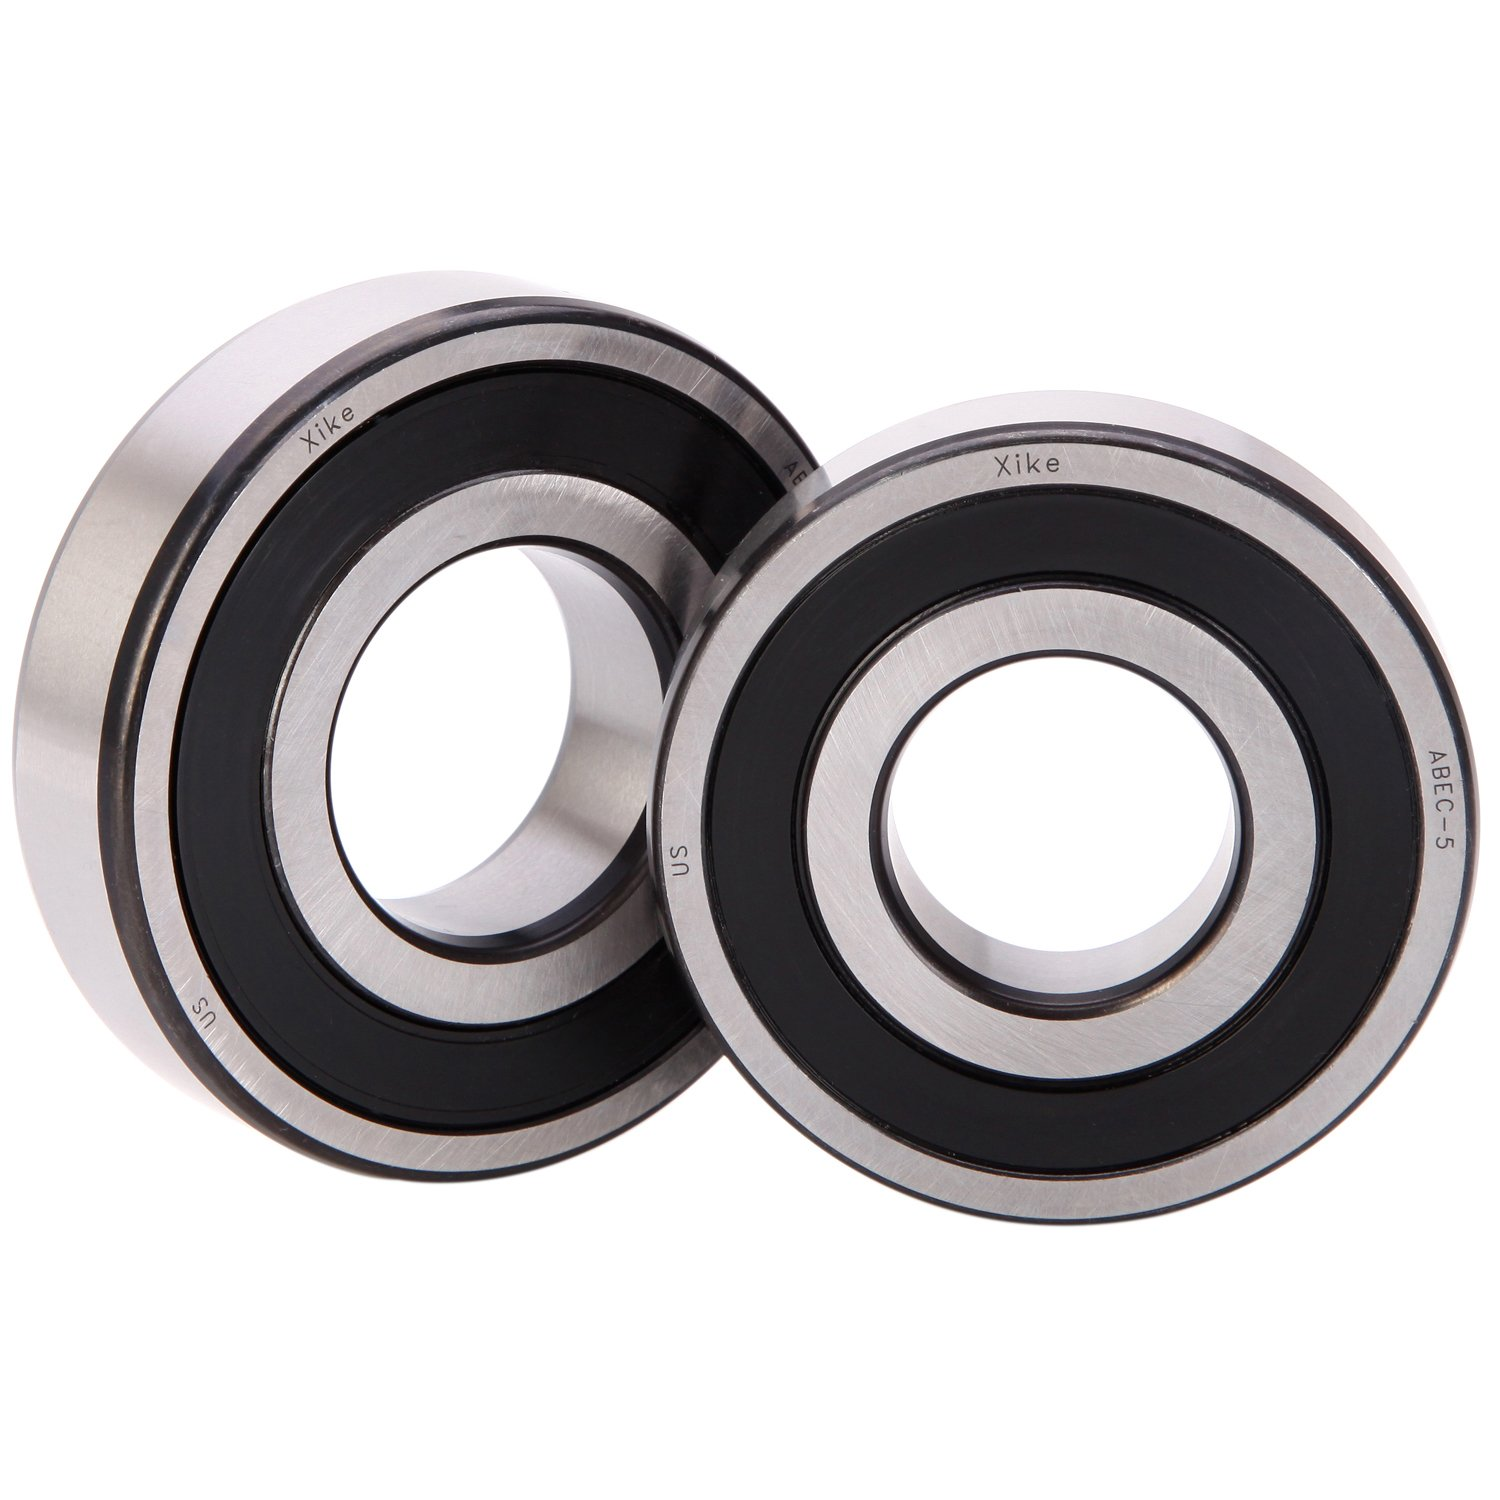 XiKe 134509510 Front Load Washer Tub Bearing & Seal Kit, Rotate Quiet and Durable Replacement for Frigidaire, Kenmore, Crosley Washer, AP3892114, 1191144, 134509500 Etc. by XiKe (Image #3)